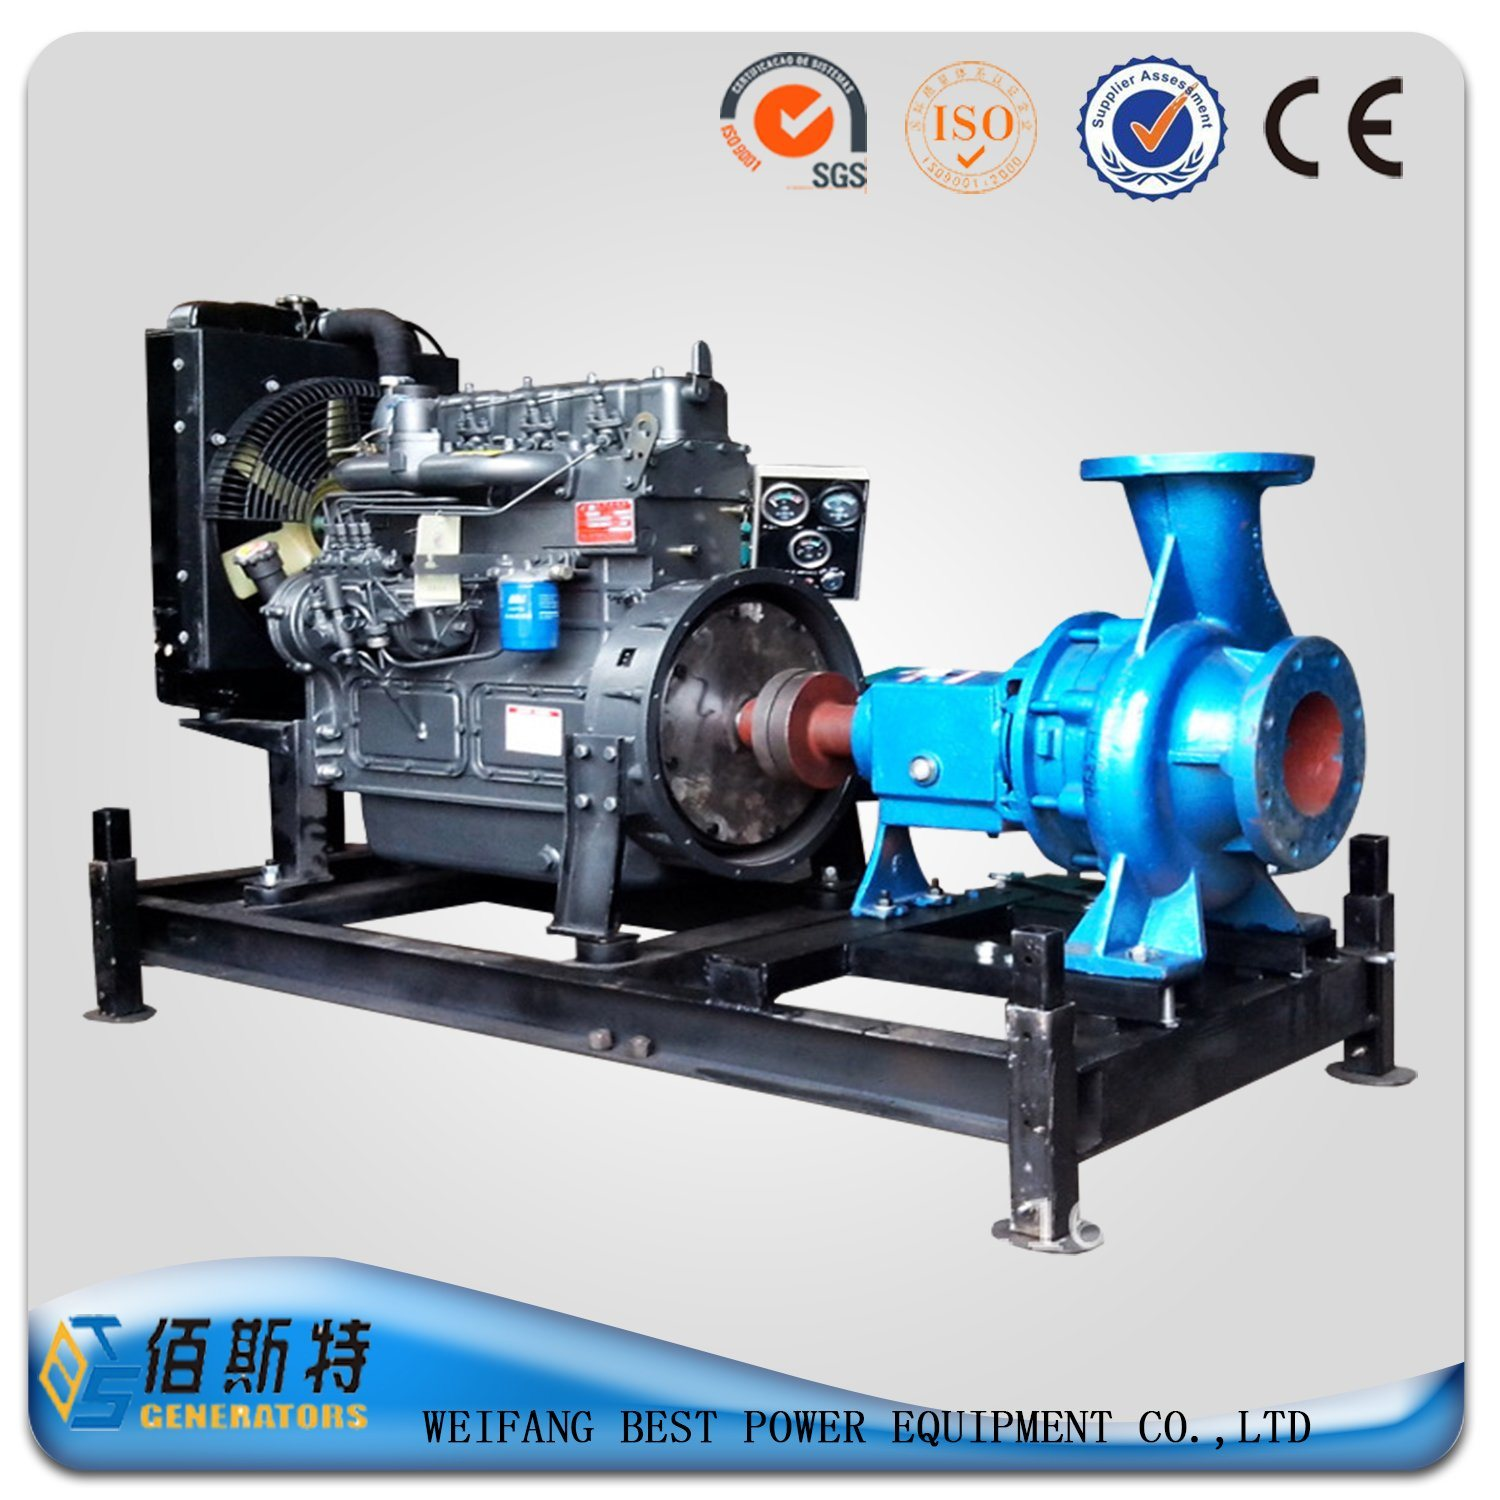 China Factory Generator Diesel Driven Pump Set for Sale China